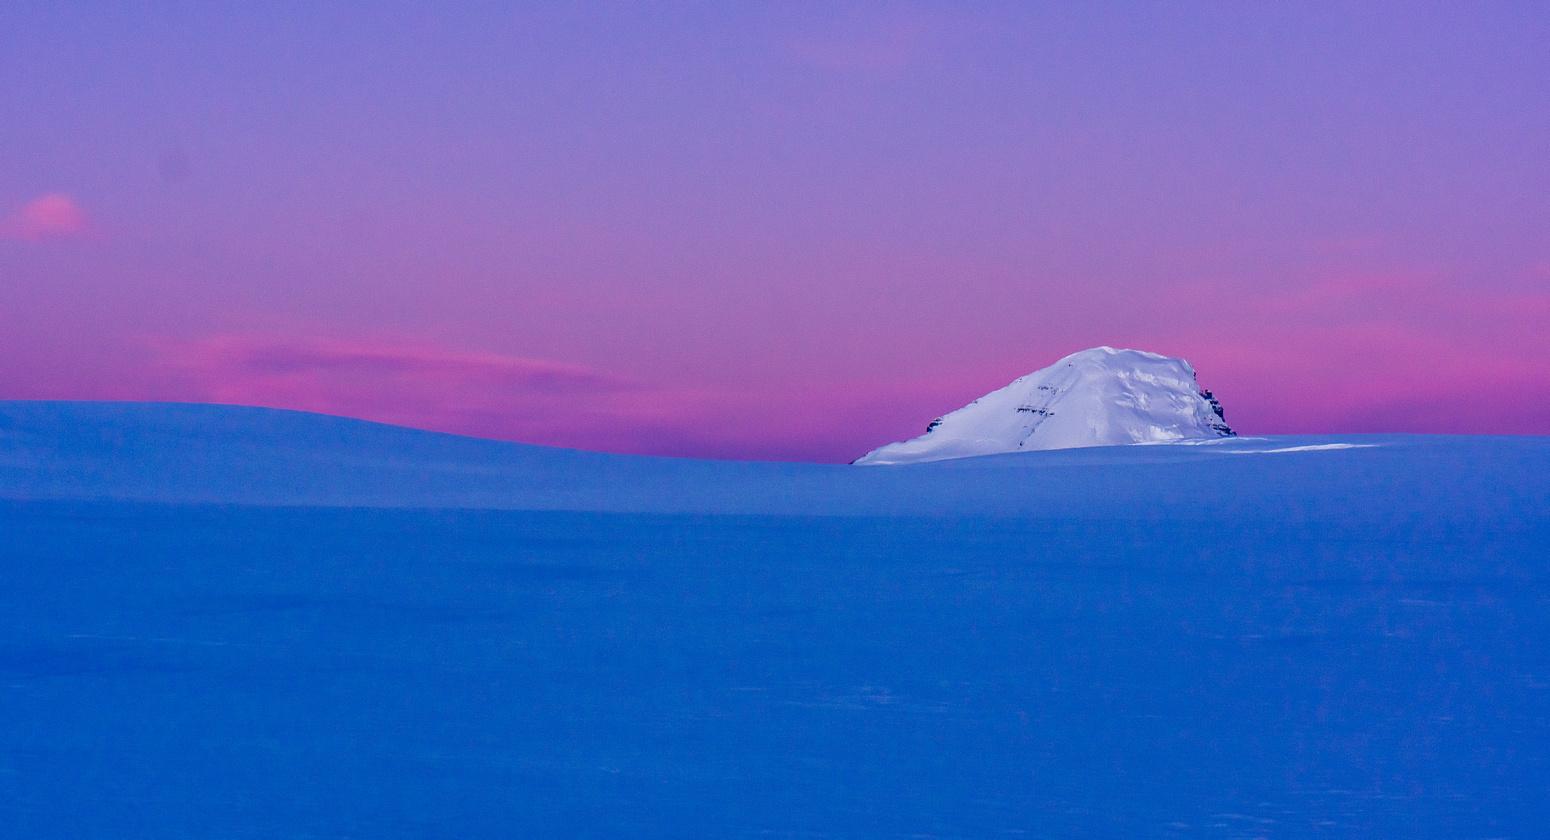 Mount Columbia at sunrise.